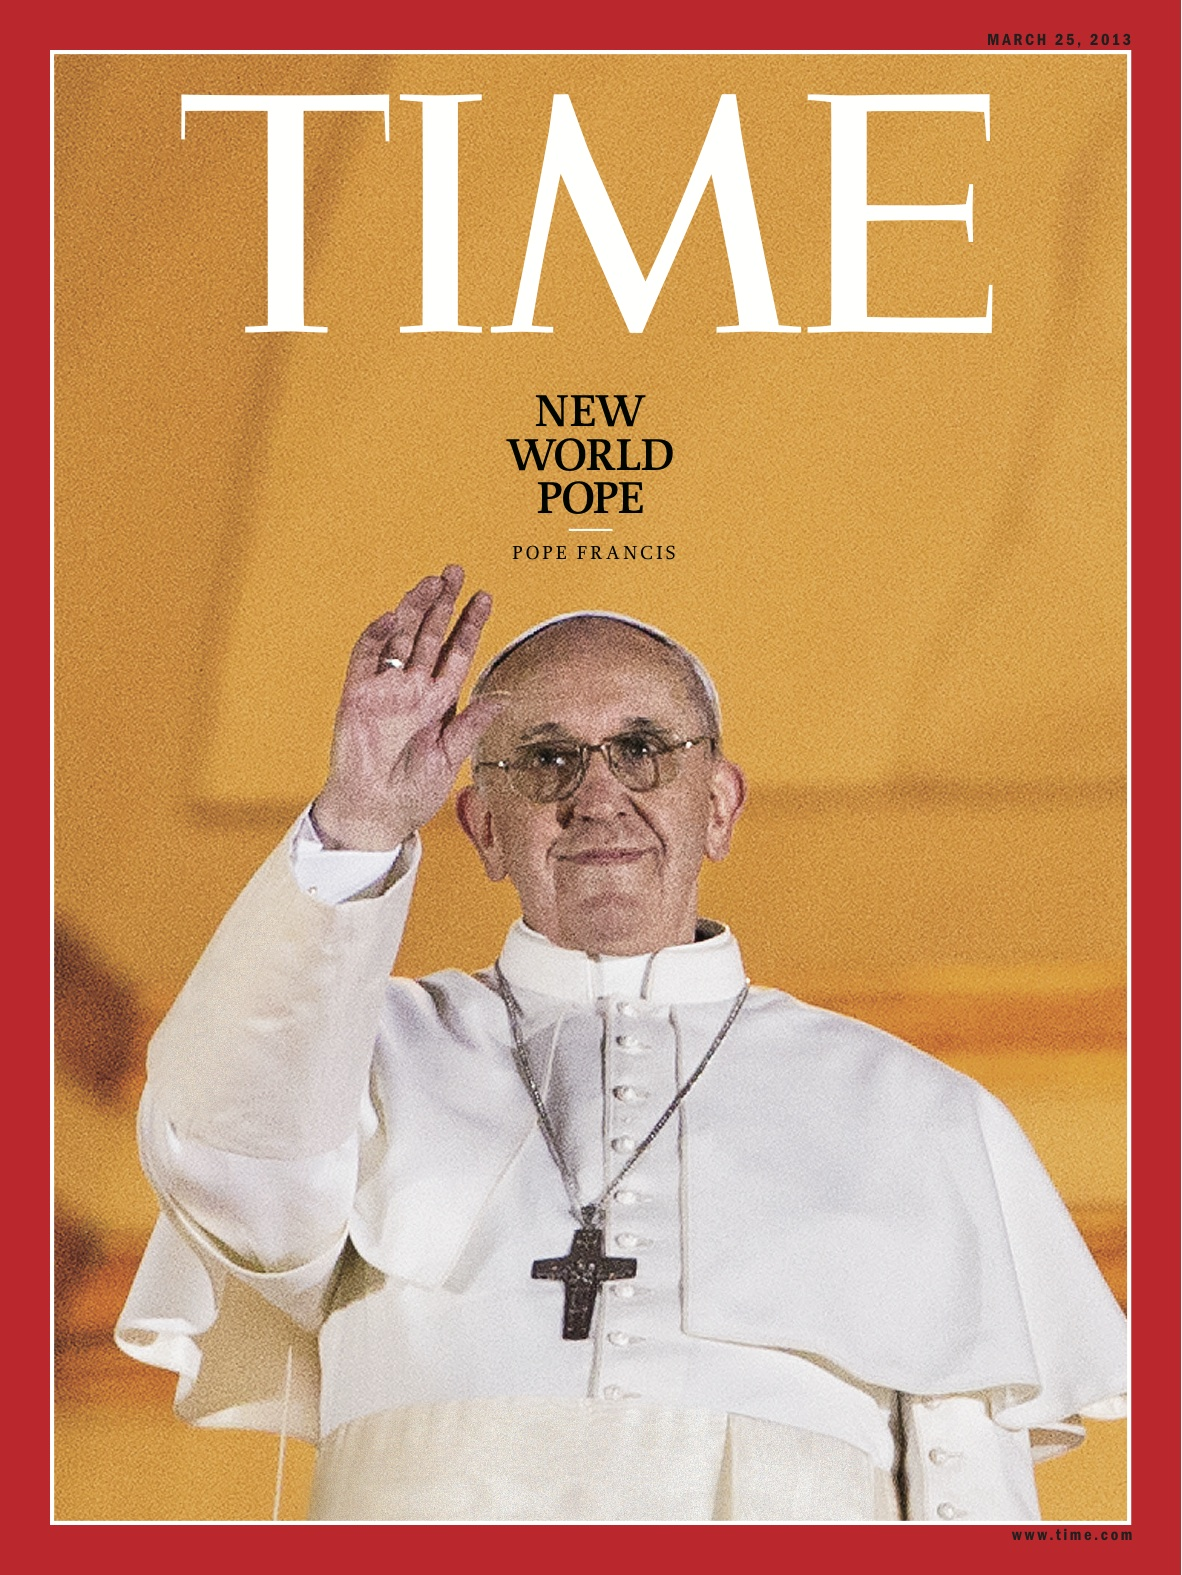 Time Magazine cover, March 25th, 2013